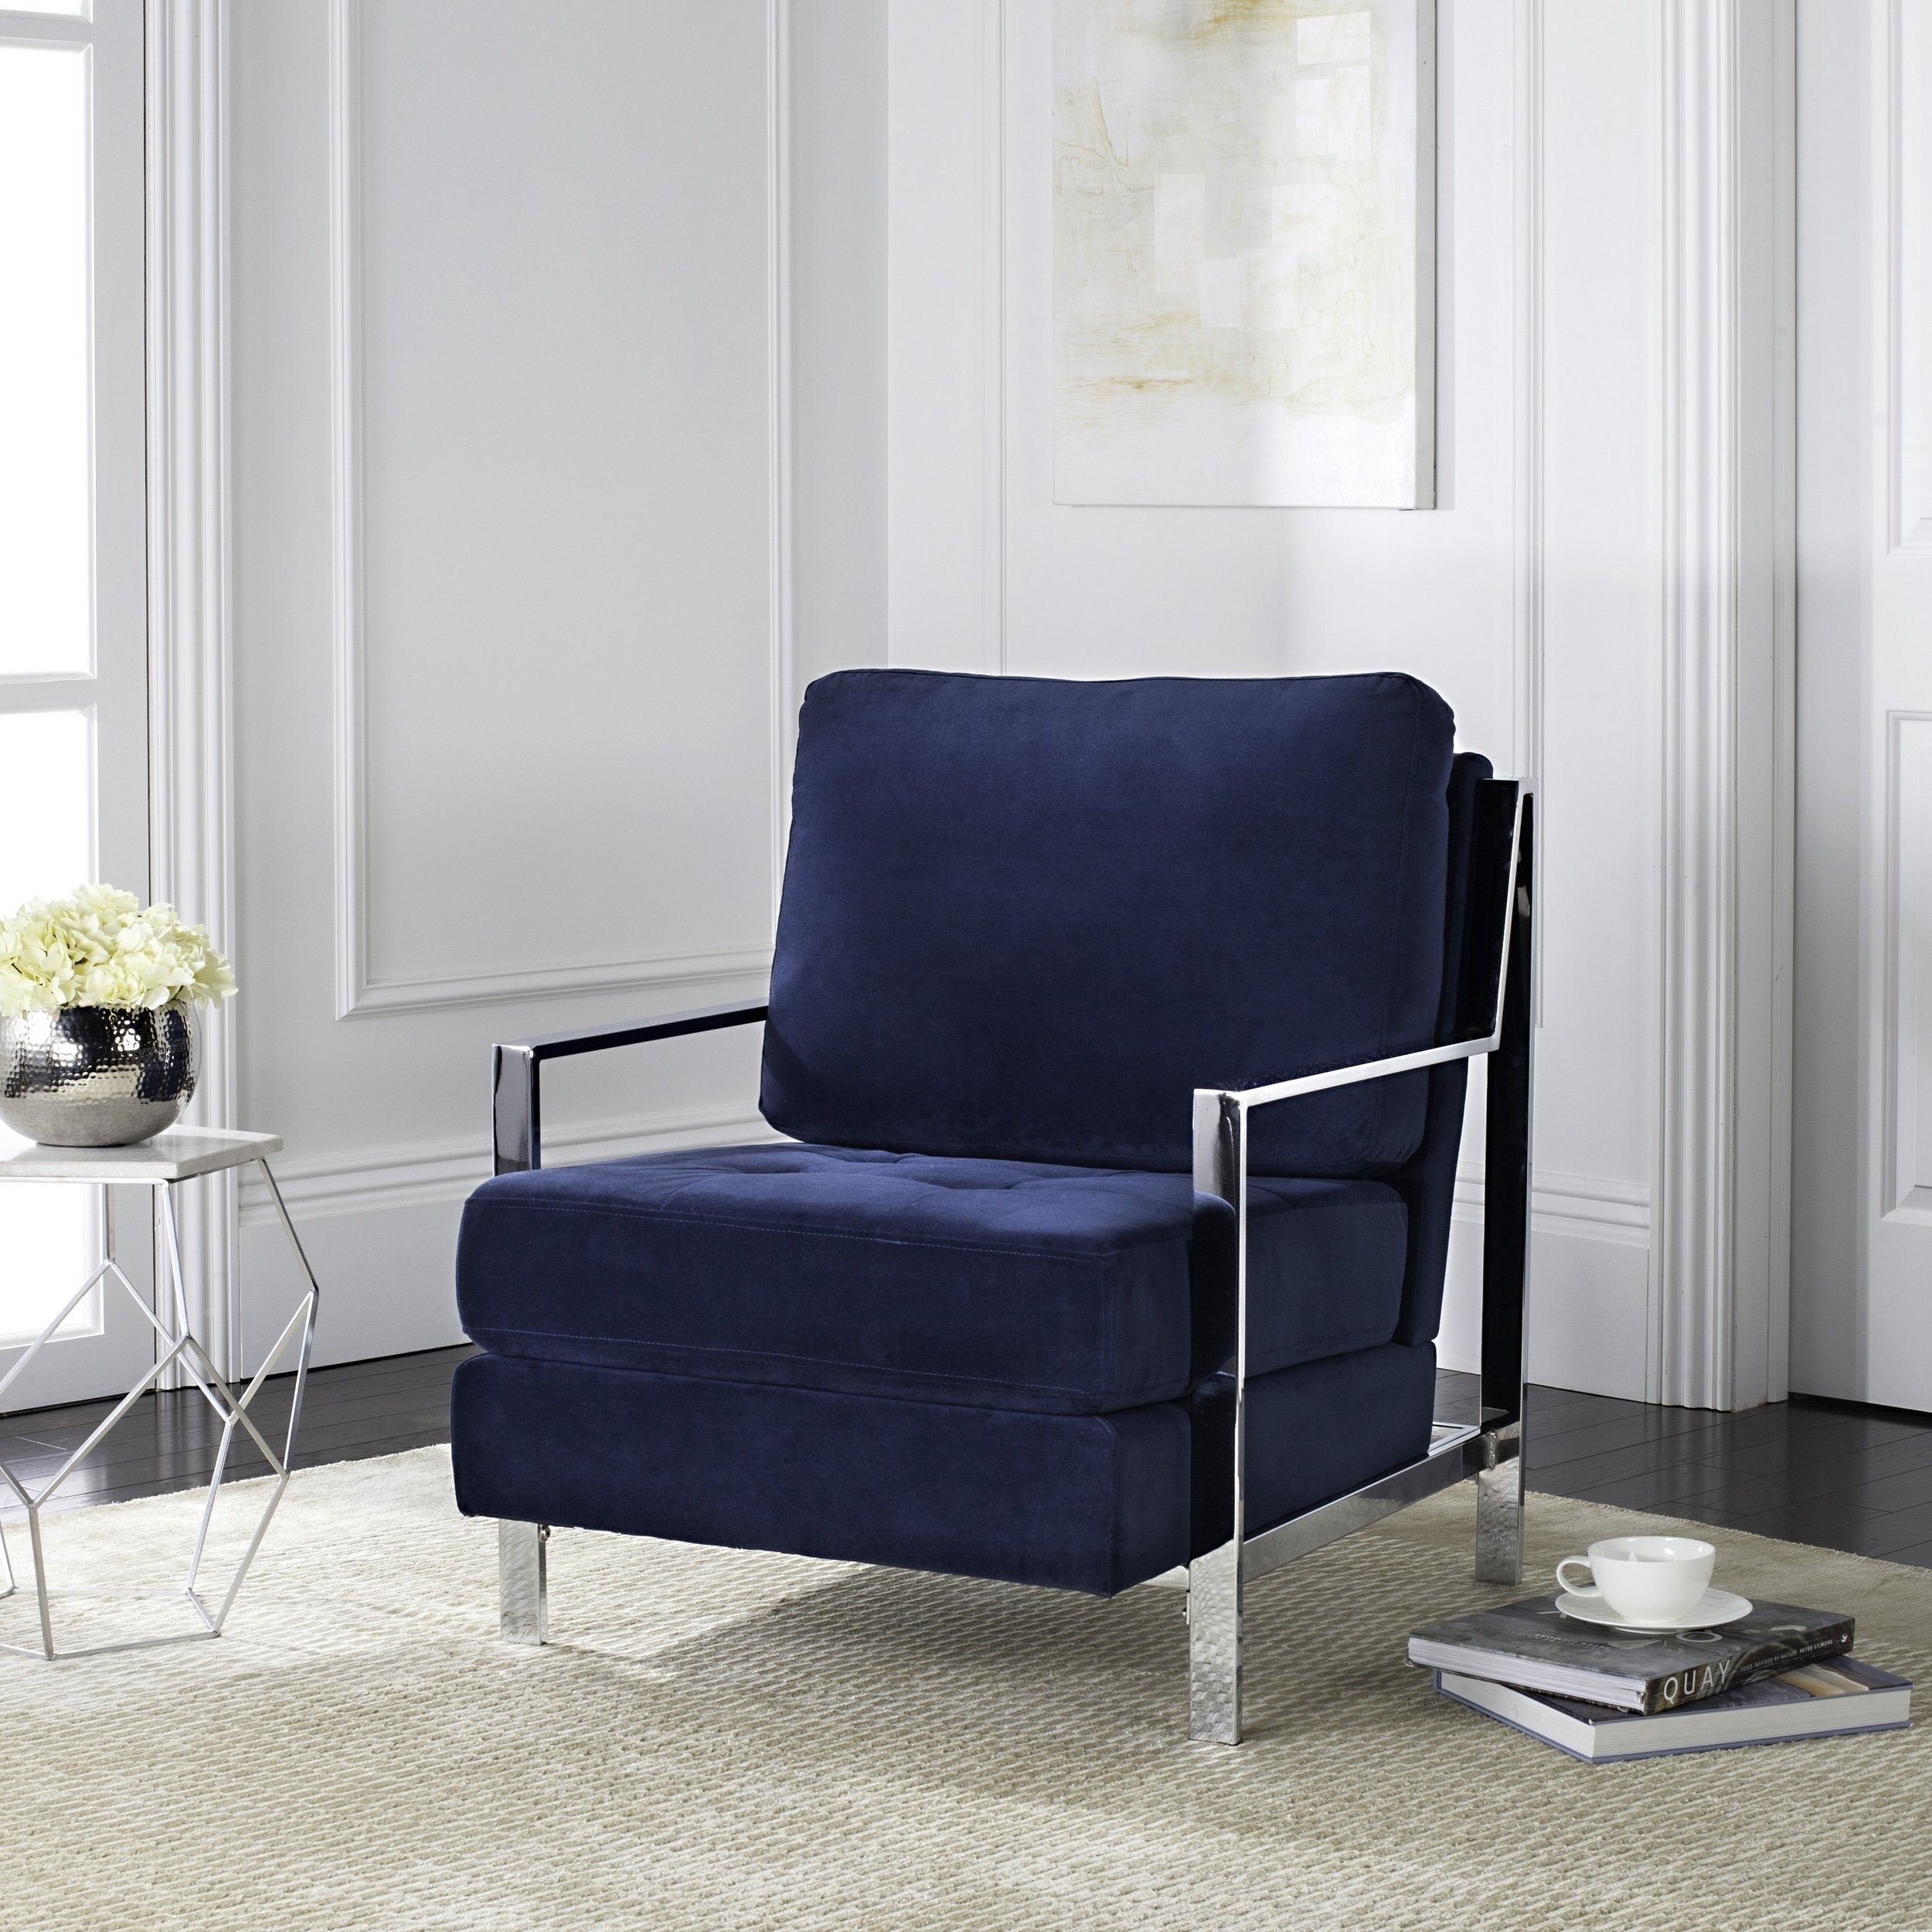 Current Shop Mid Century Modern Glam Velvet Navy Blue Club Chair – Free Regarding Walden Upholstered Side Chairs (#4 of 20)